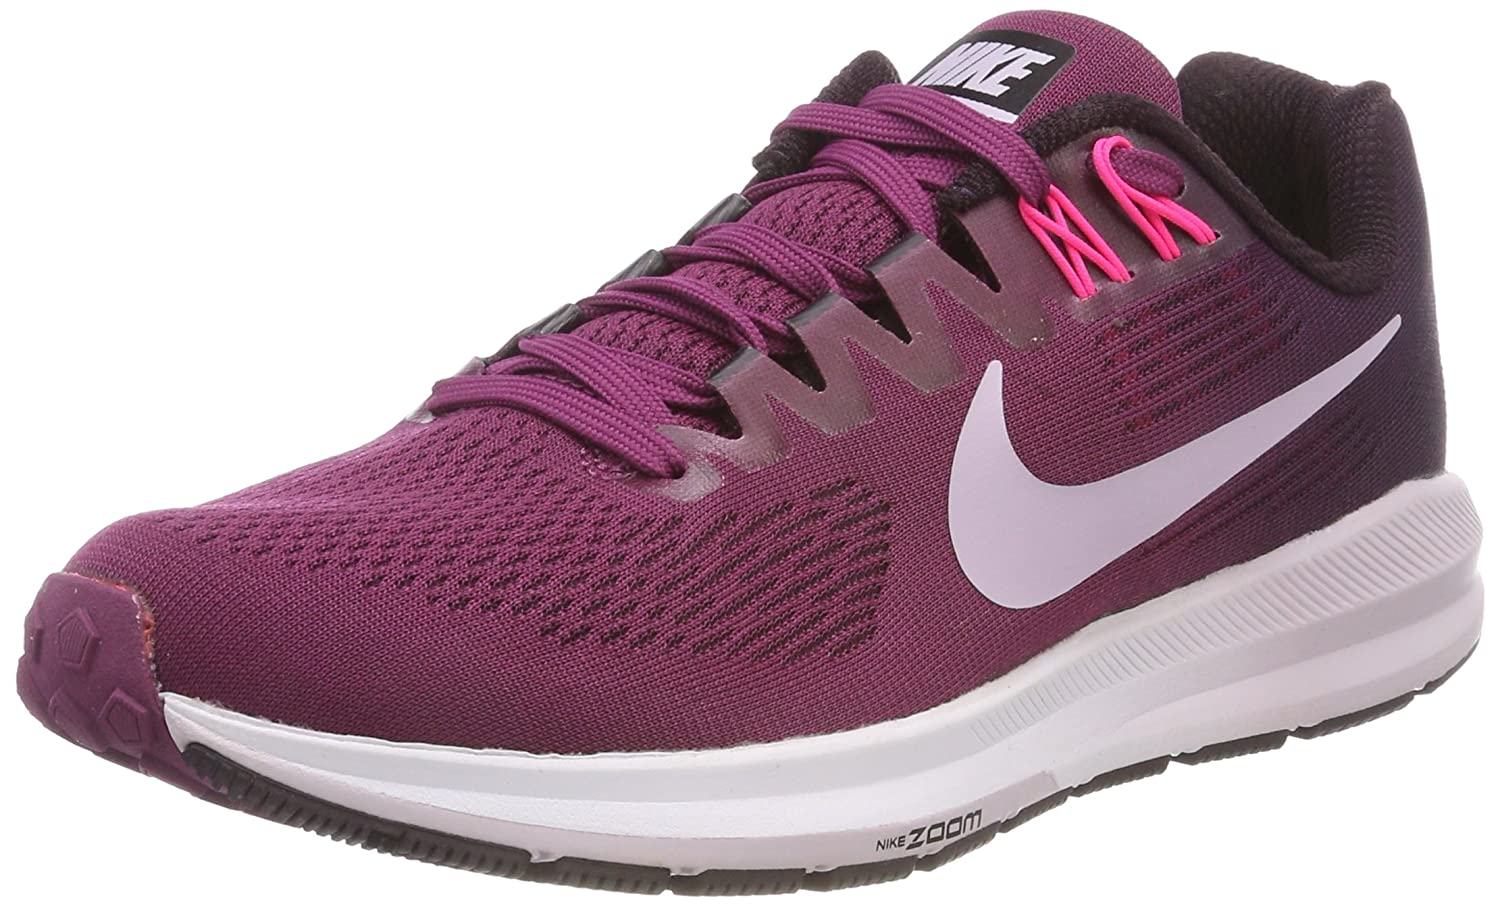 NIKE Women's Air Zoom Structure 21 Running Shoe B001FB2HZY 6.5 B(M) US|Tea Berry/Iced Lilac-port Wine